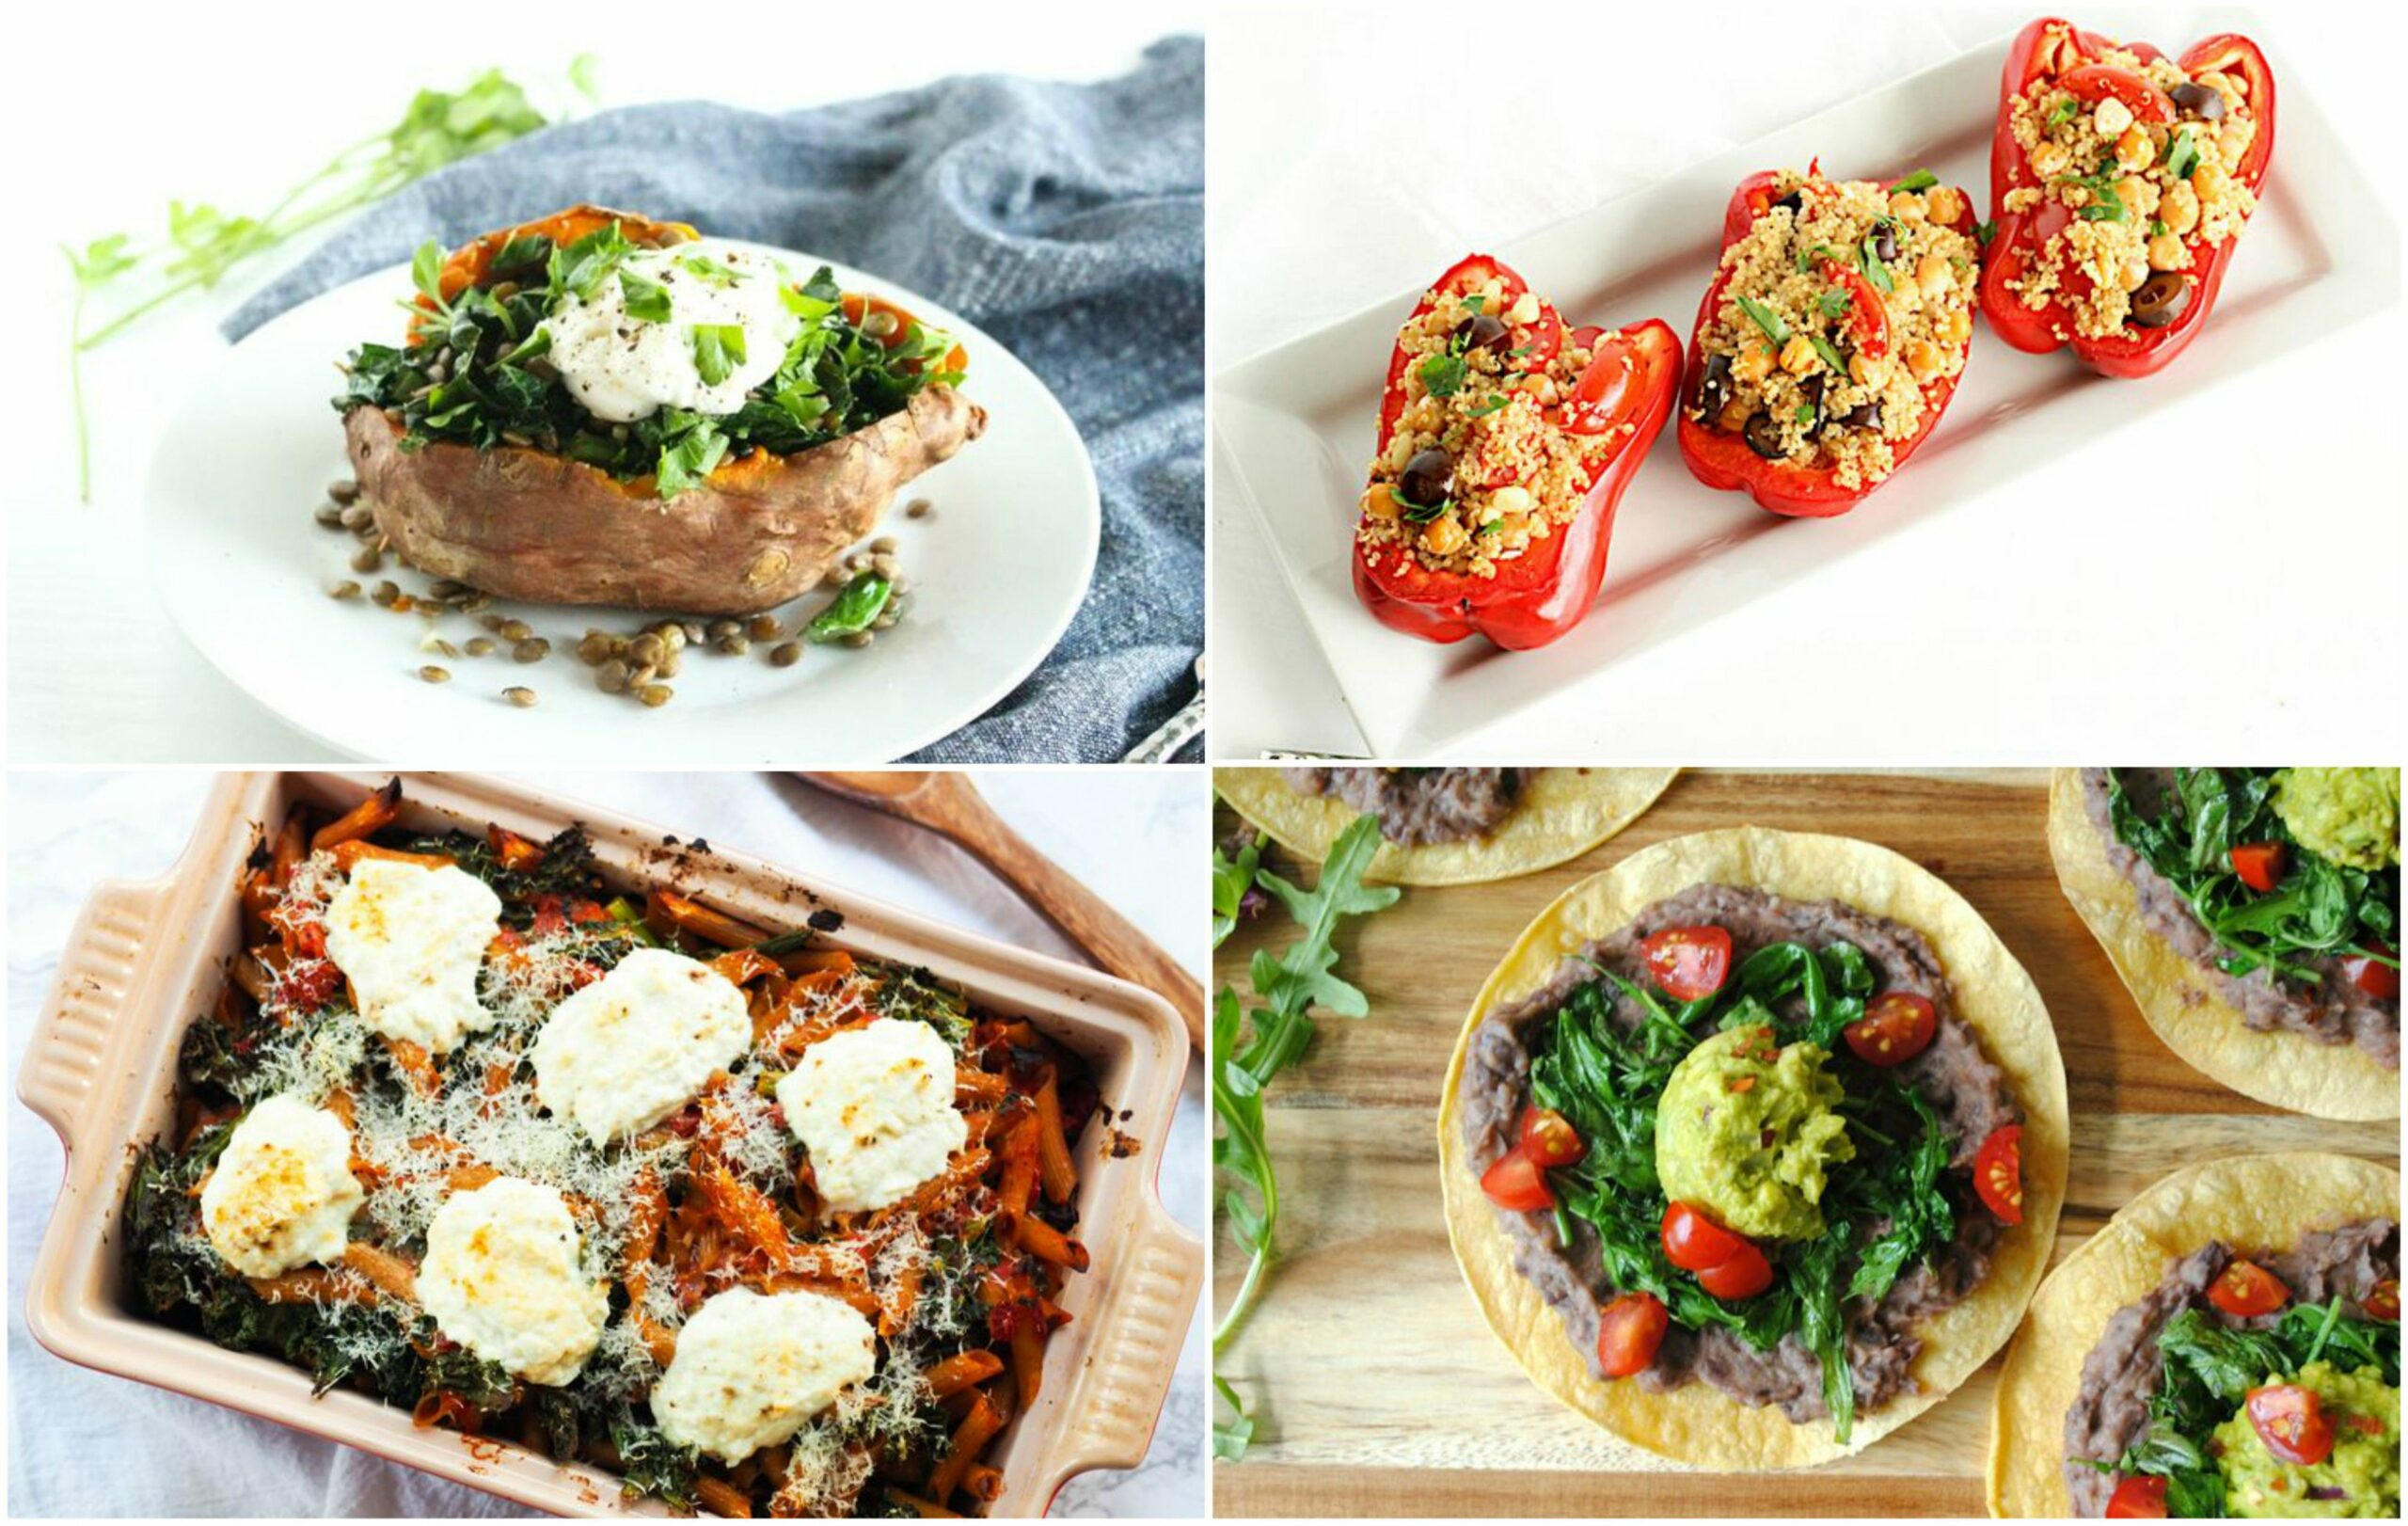 10 Iron-Rich Vegetarian Meals - Easy Recipes Rich In Iron